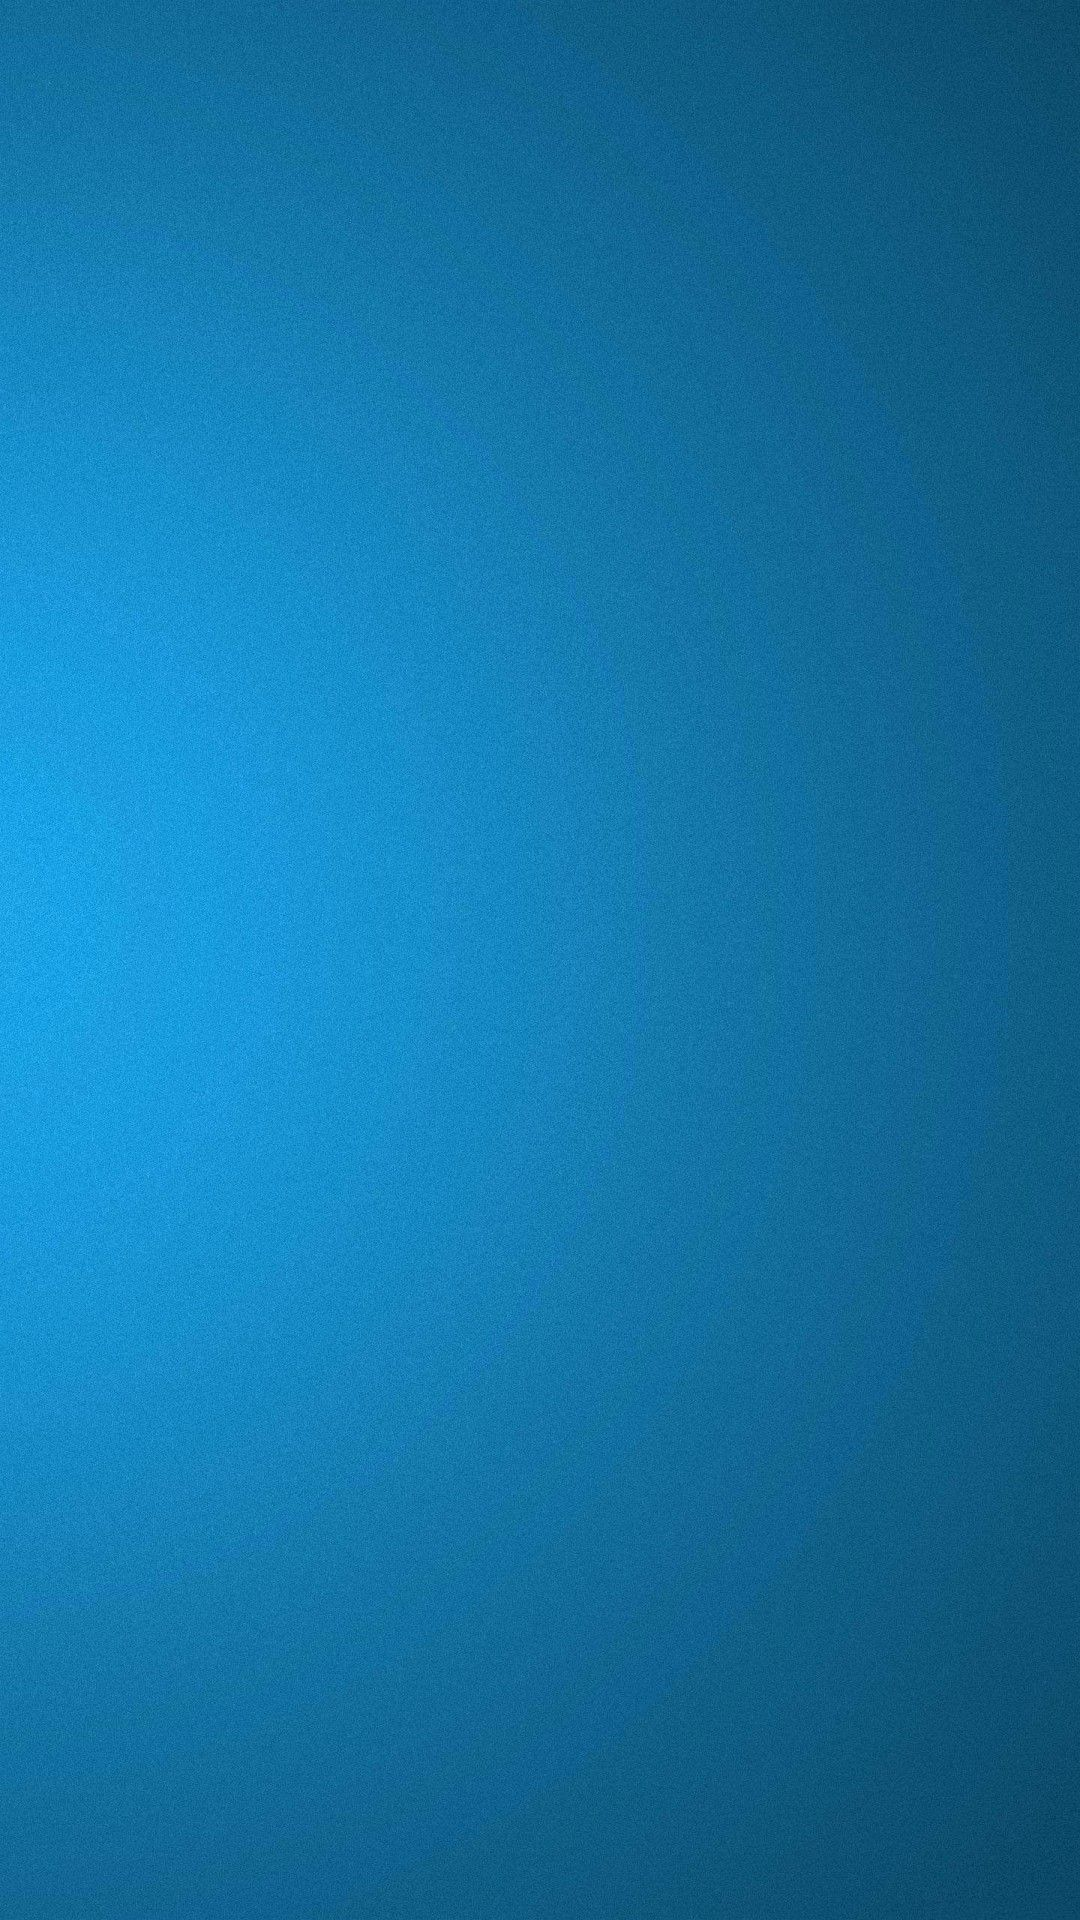 Blue Theme Android Background In 2020 S5 Wallpaper Iphone Wallpaper Solid Color Color Wallpaper Iphone